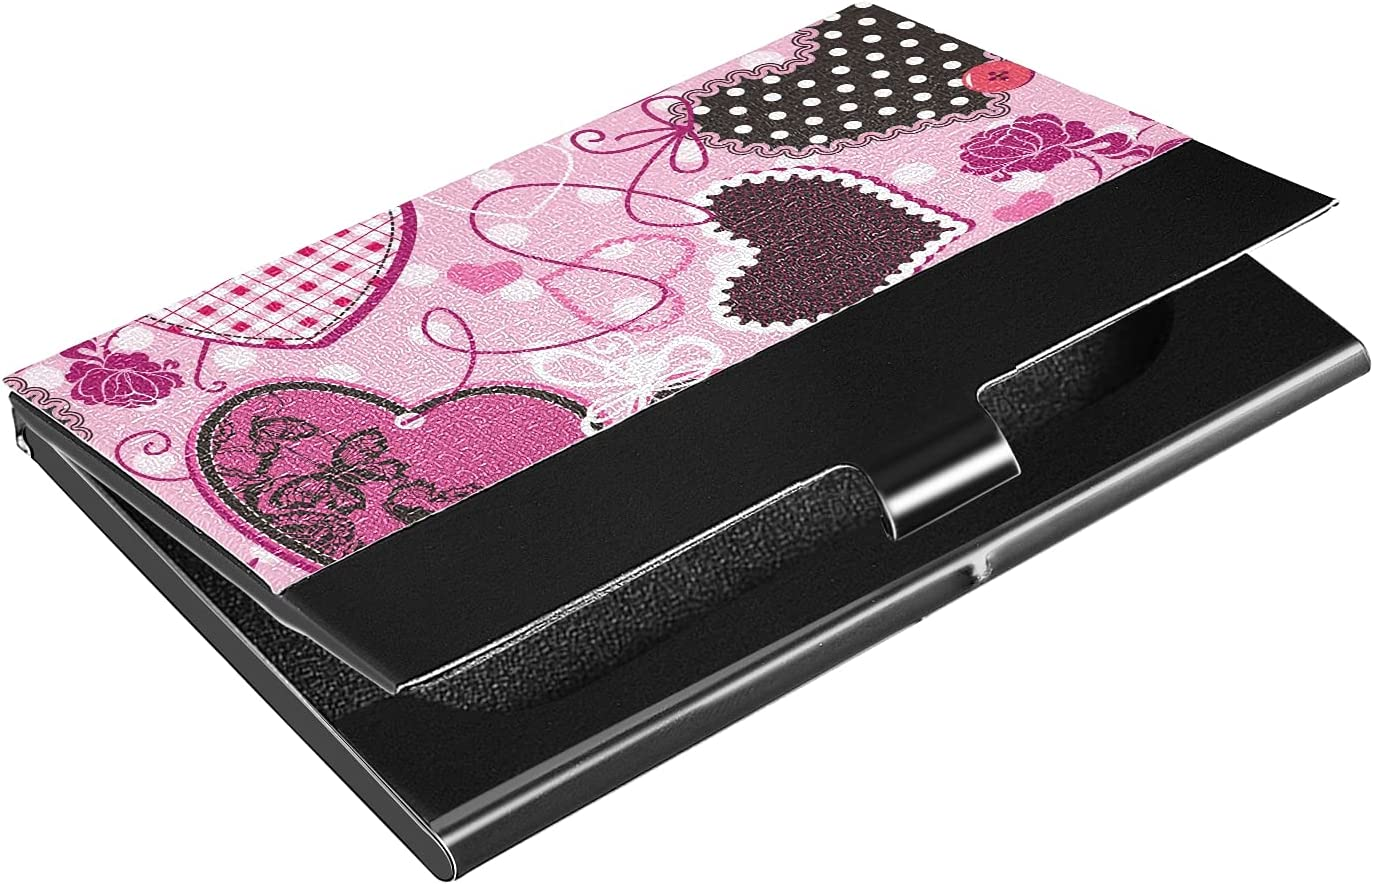 Boston Mall OTVEE Pink and Black Hearts Wallet Holder Stainles Outlet sale feature Business Card